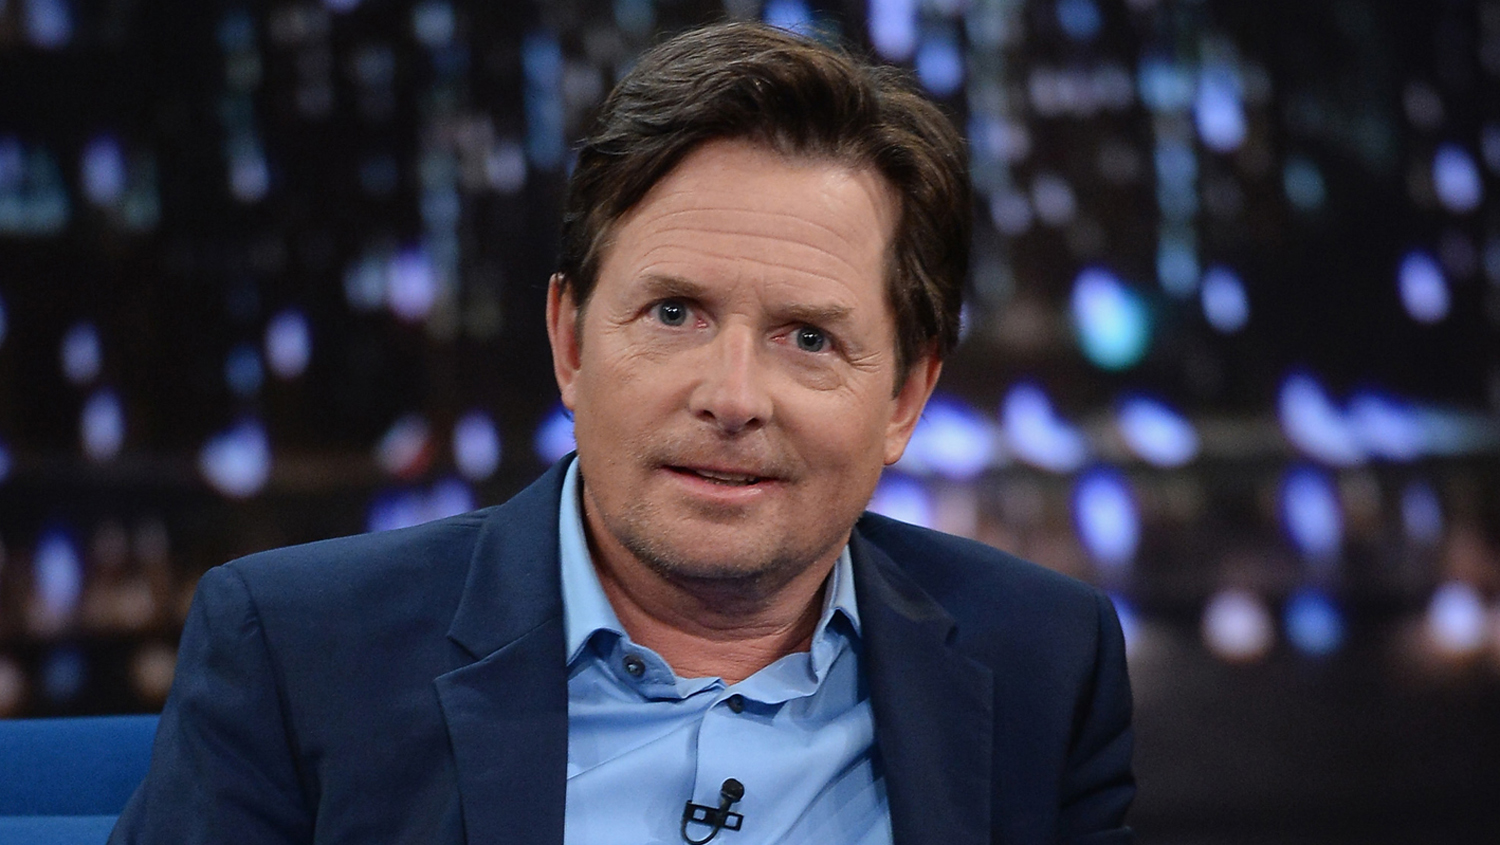 Michael J Fox Today Video